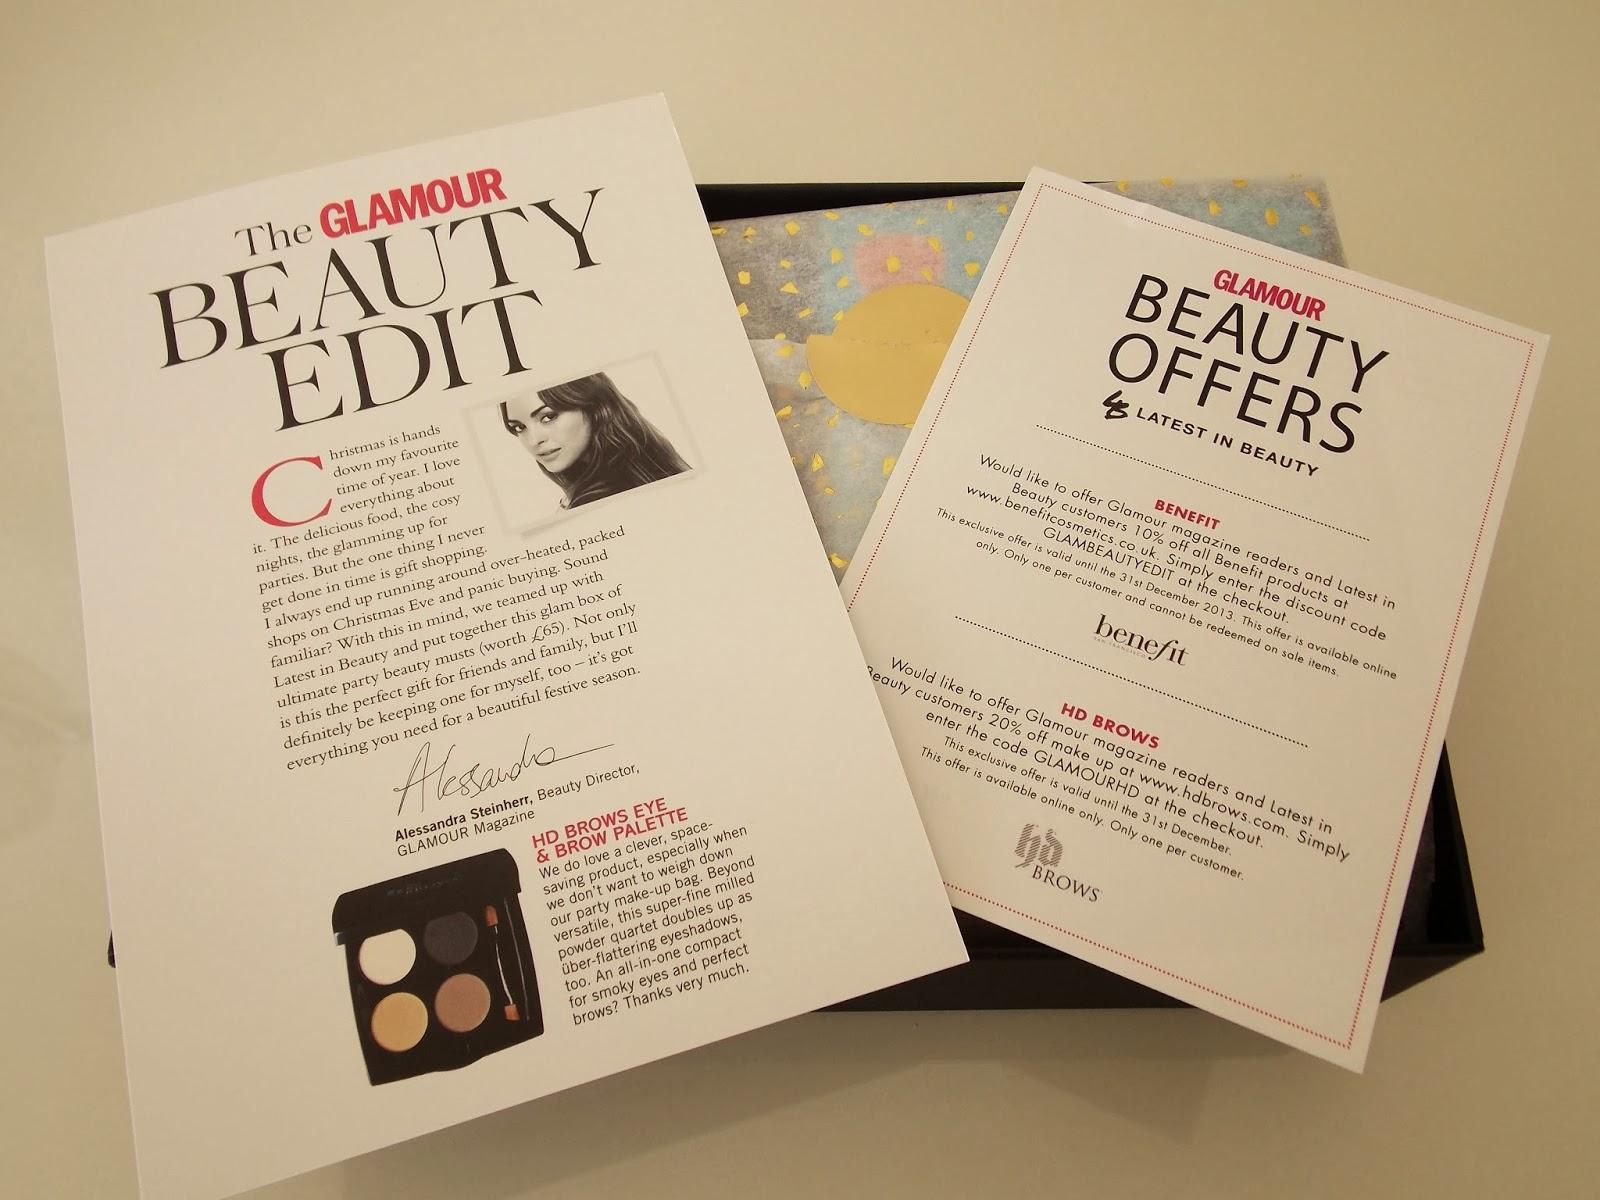 Latest in Beauty: Glamour Beauty Edit - a run down of the contents